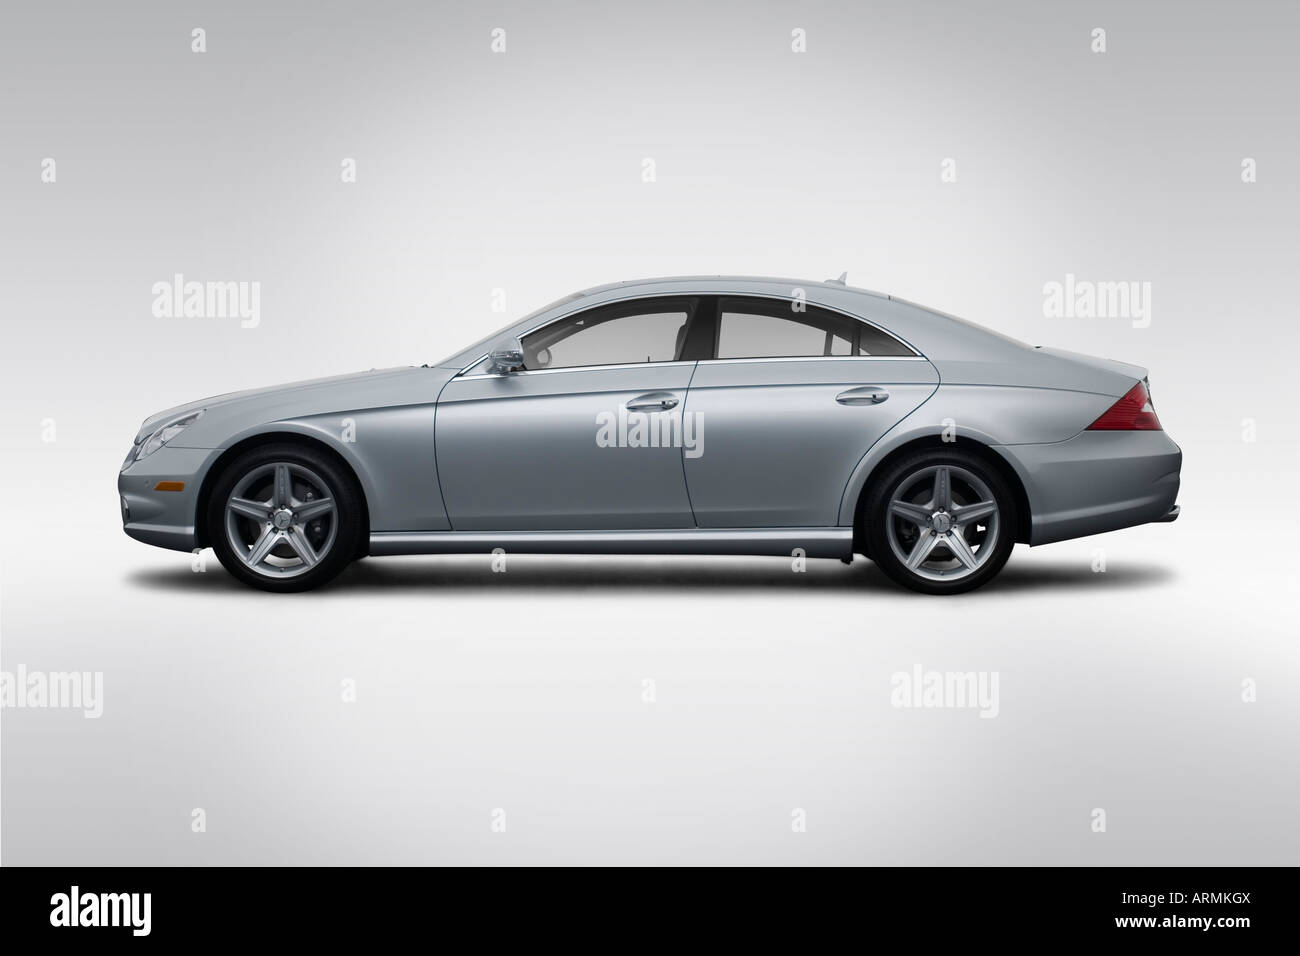 2008 mercedes benz cls class cls550 in silver drivers side profile